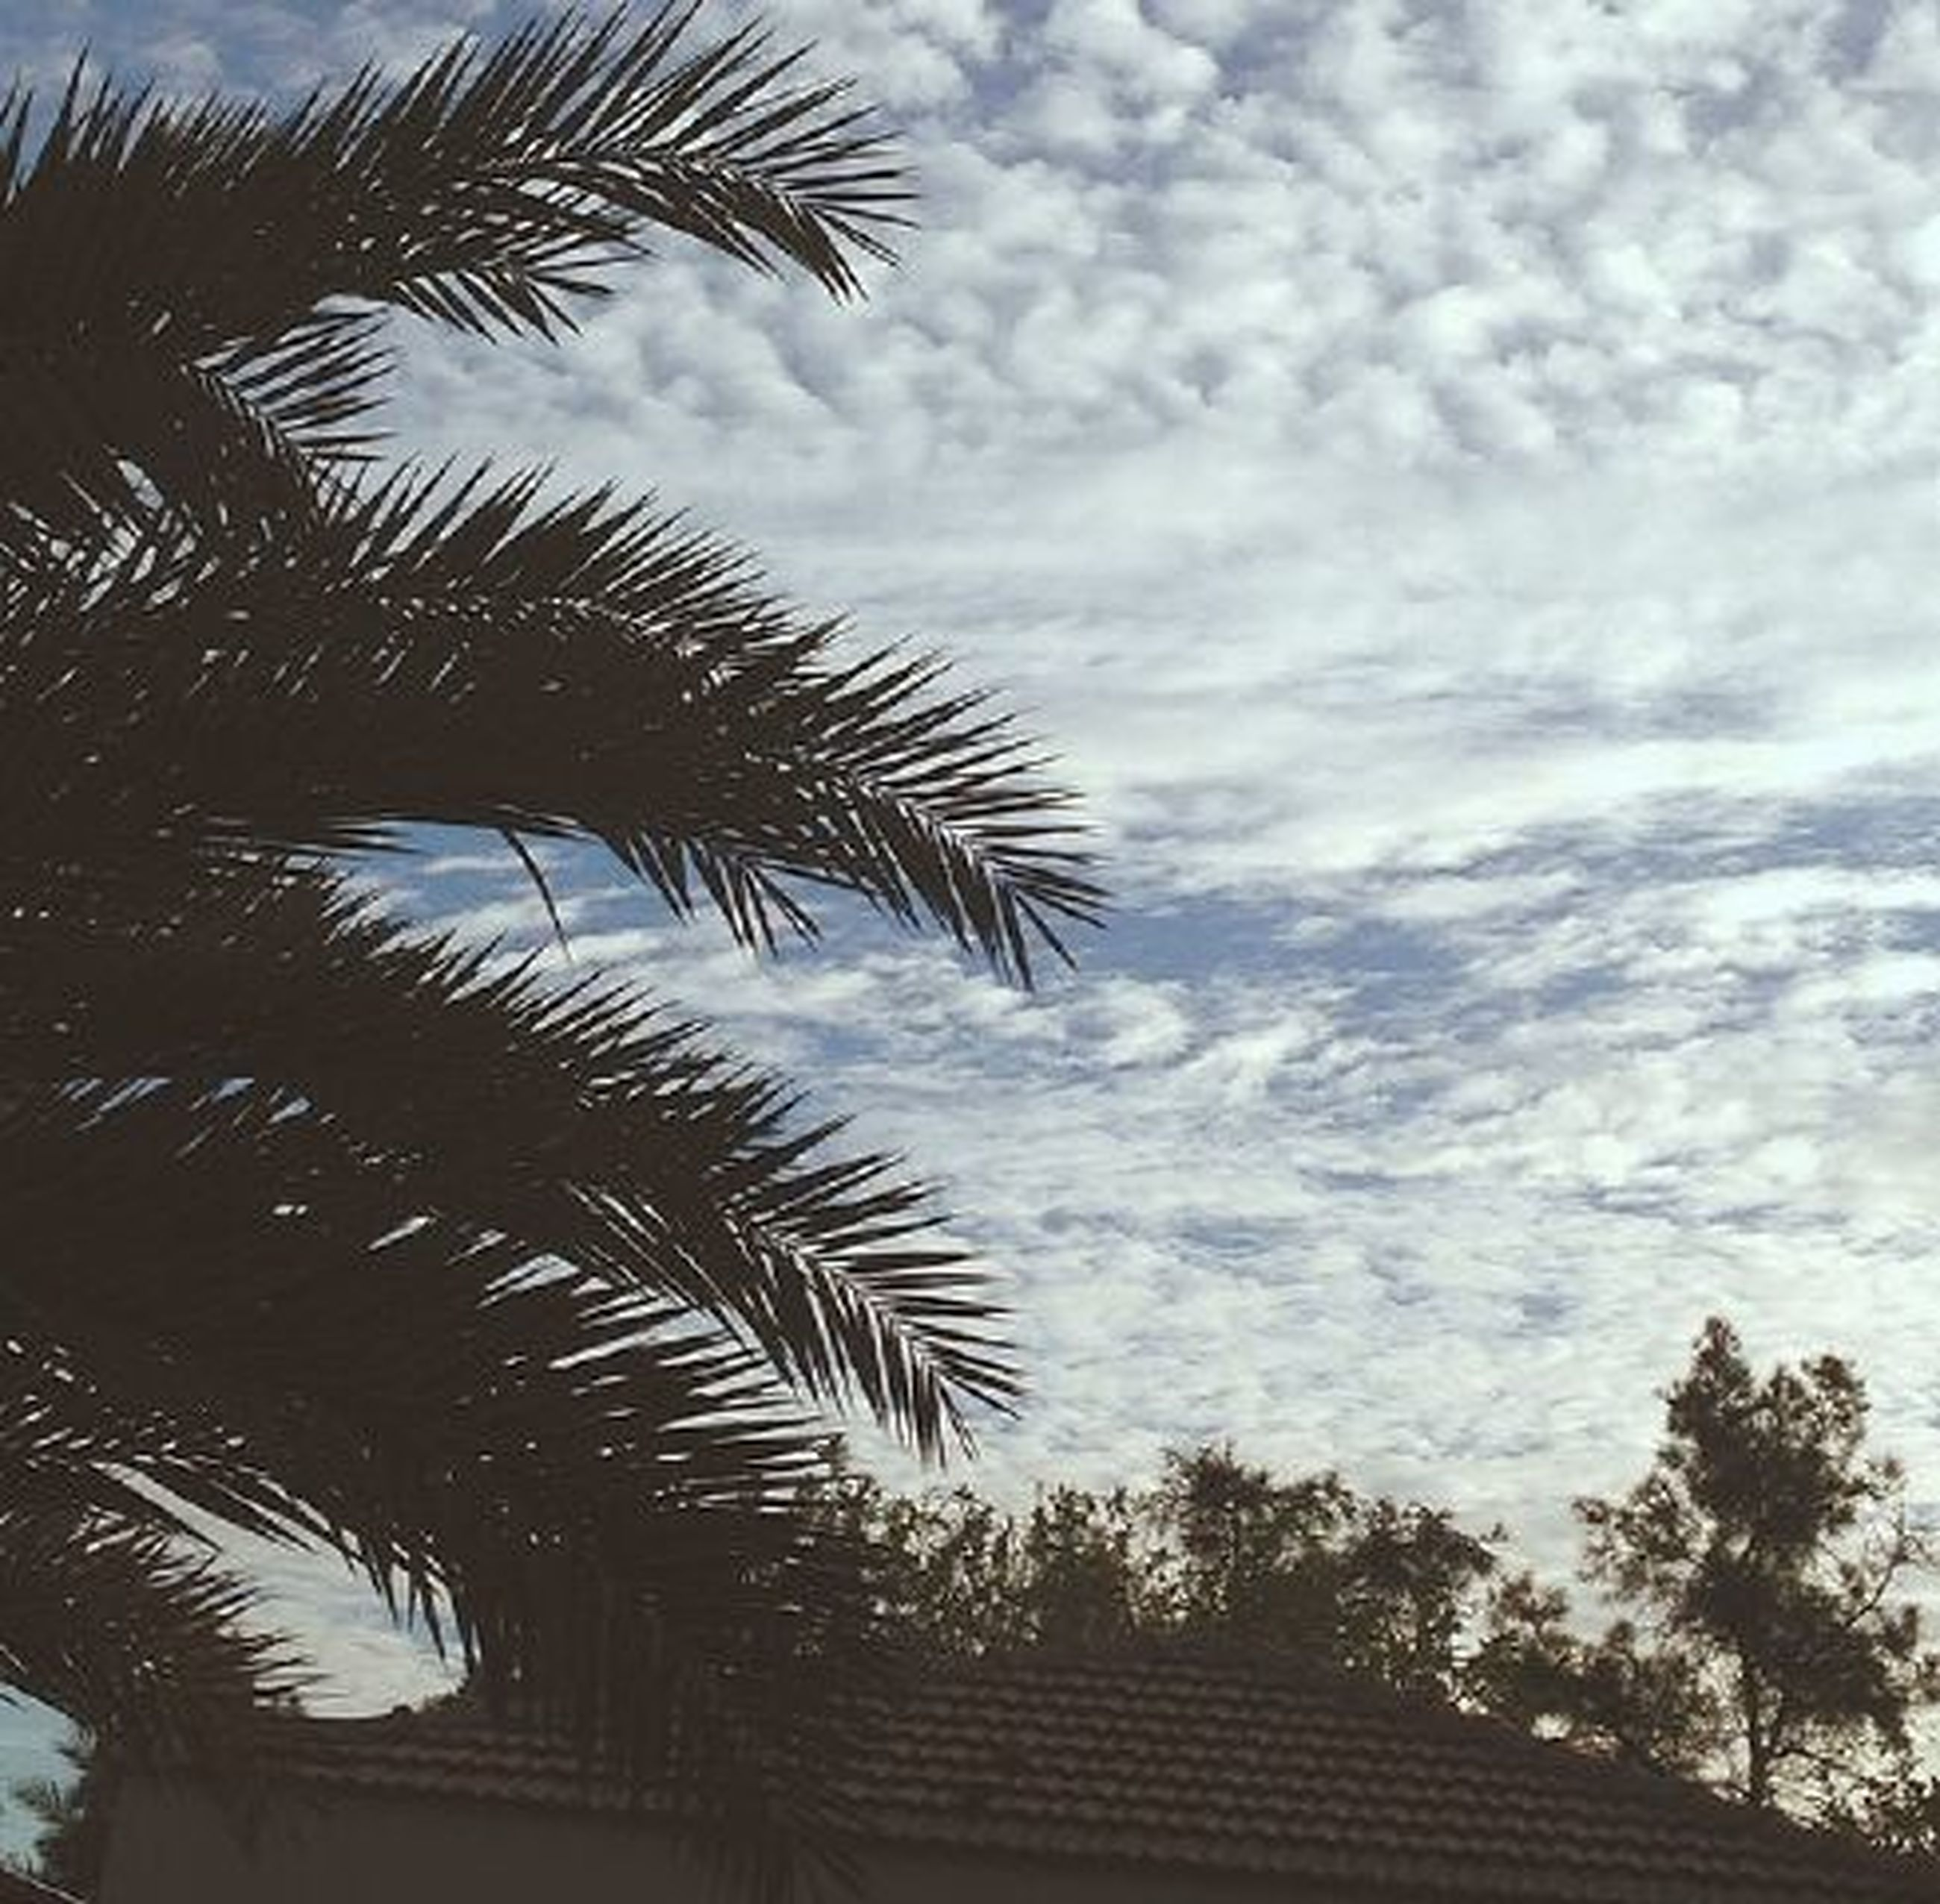 palm tree, sky, tree, low angle view, cloud - sky, growth, cloudy, cloud, nature, tranquility, beauty in nature, built structure, scenics, coconut palm tree, outdoors, palm leaf, no people, day, architecture, building exterior